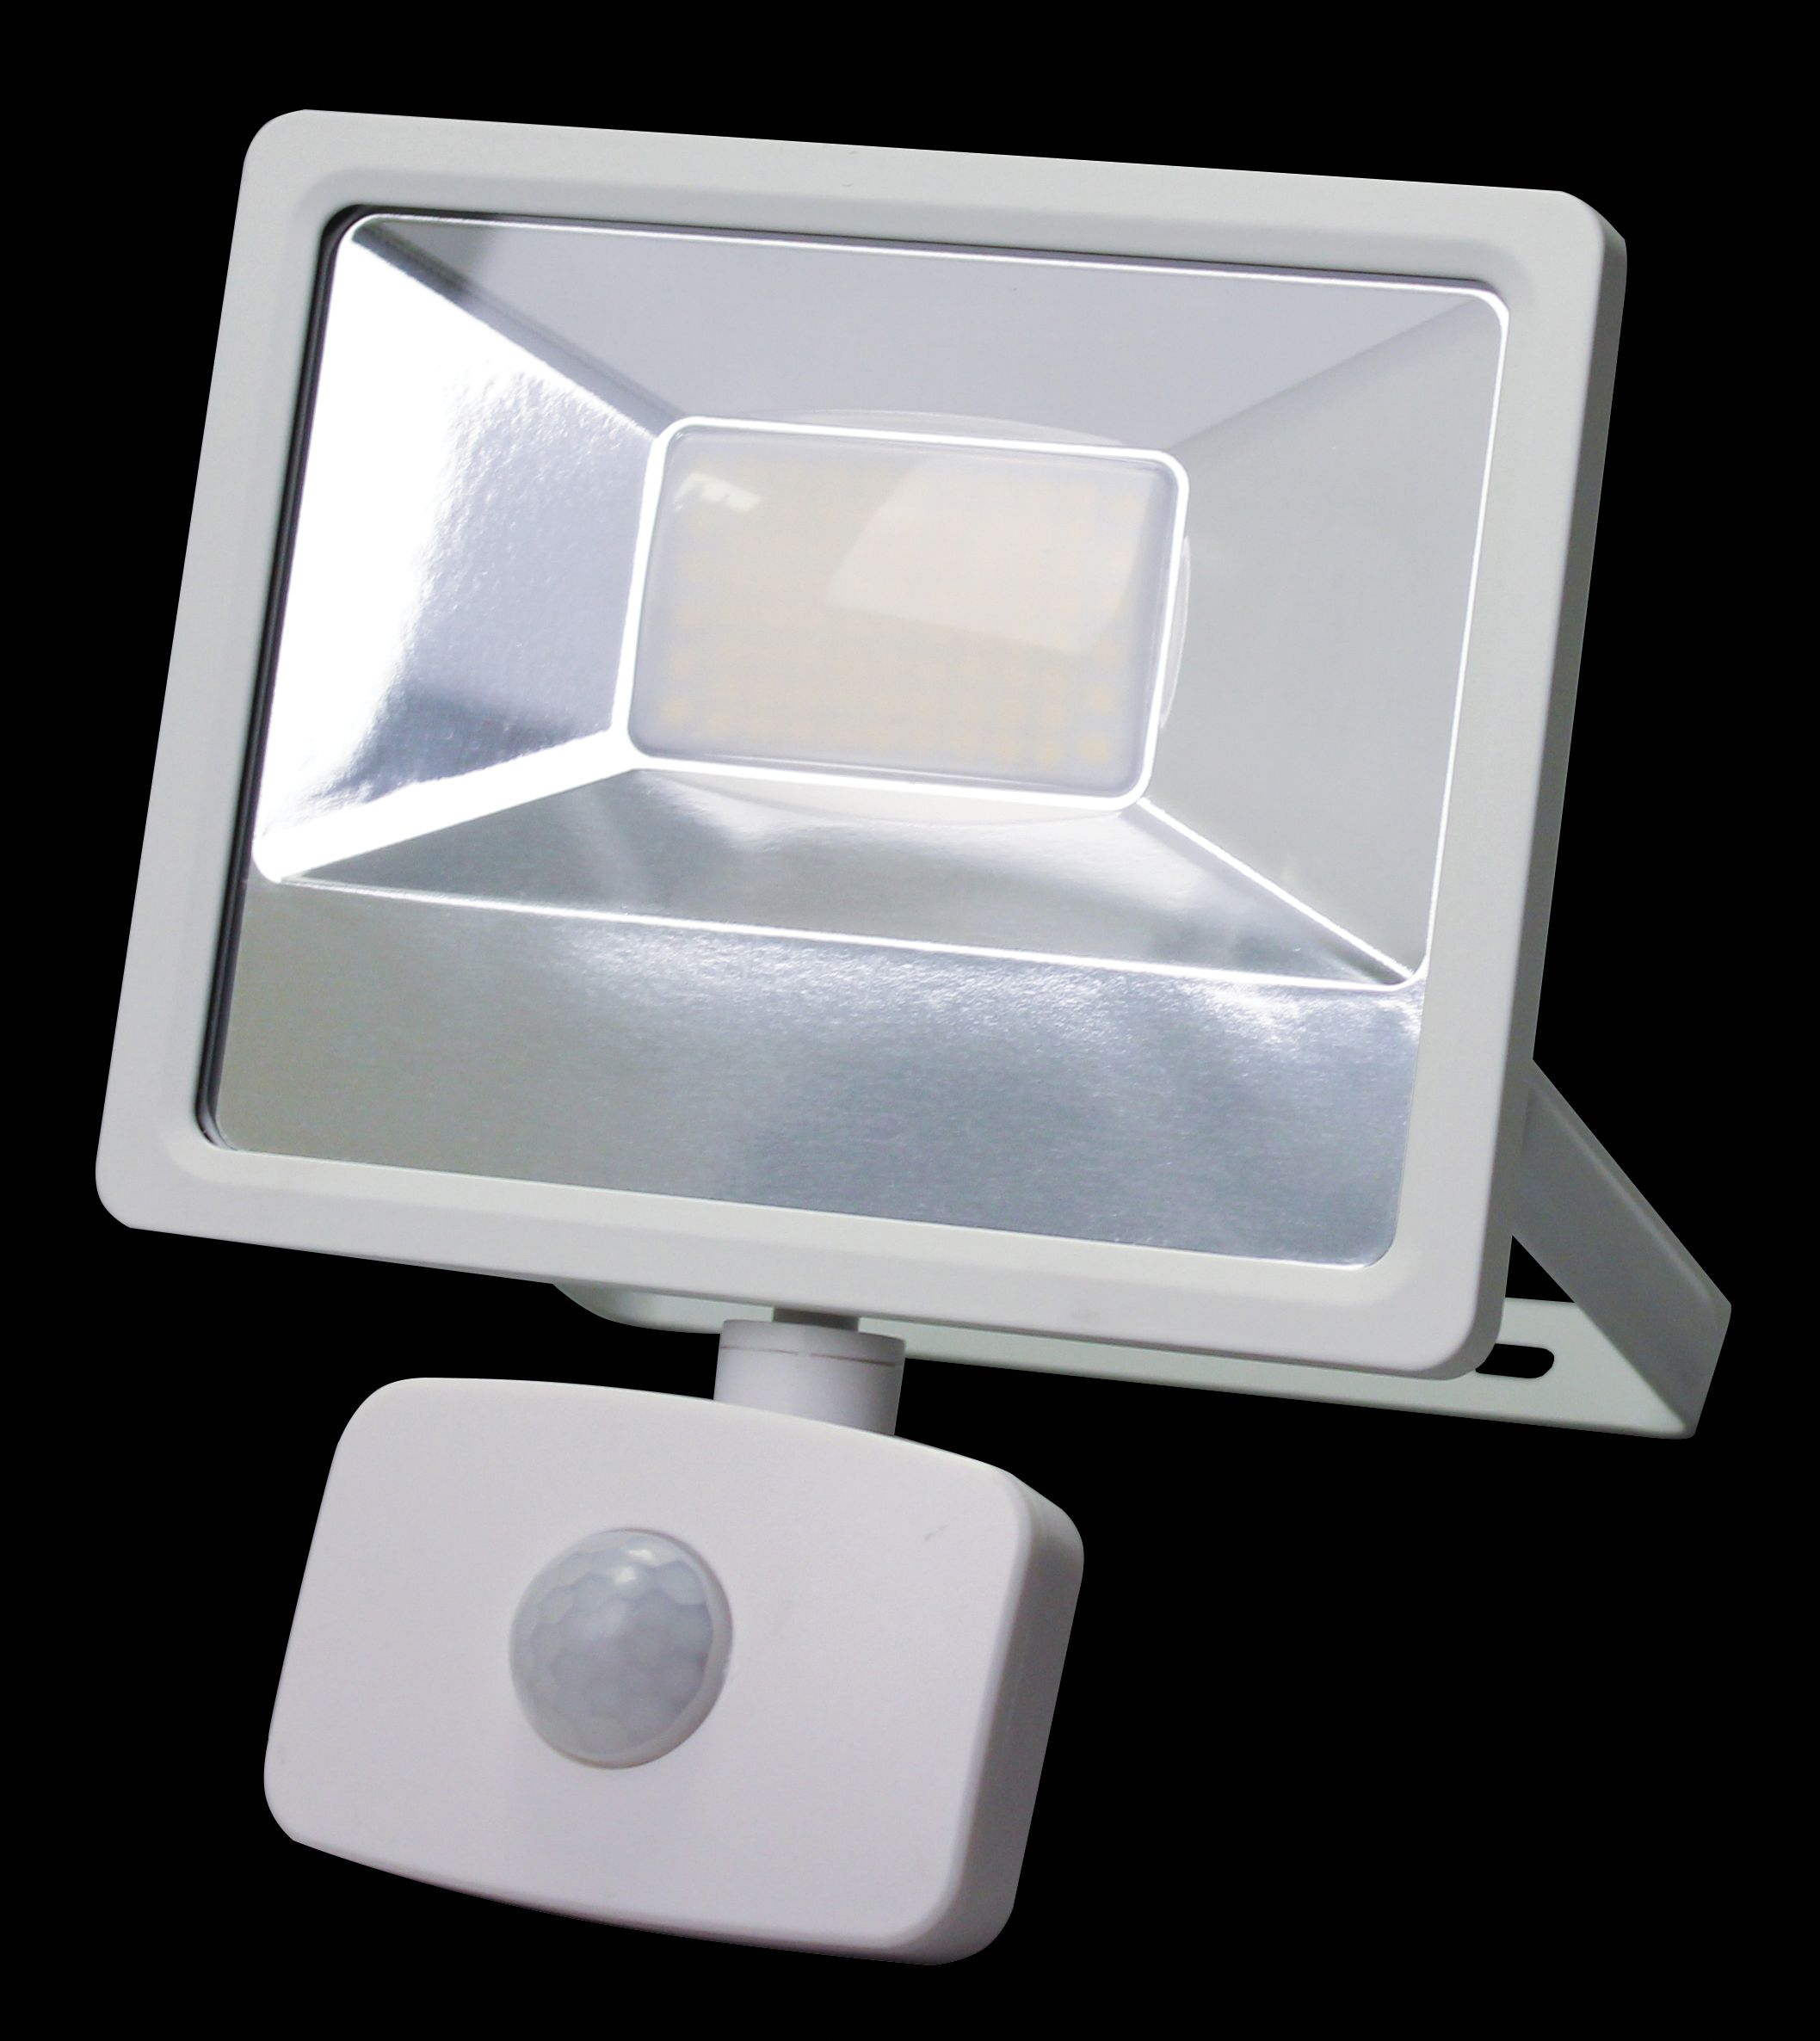 Wickes Pir Wiring Instructions Floodlight Aluminium White Sensor 30w 348